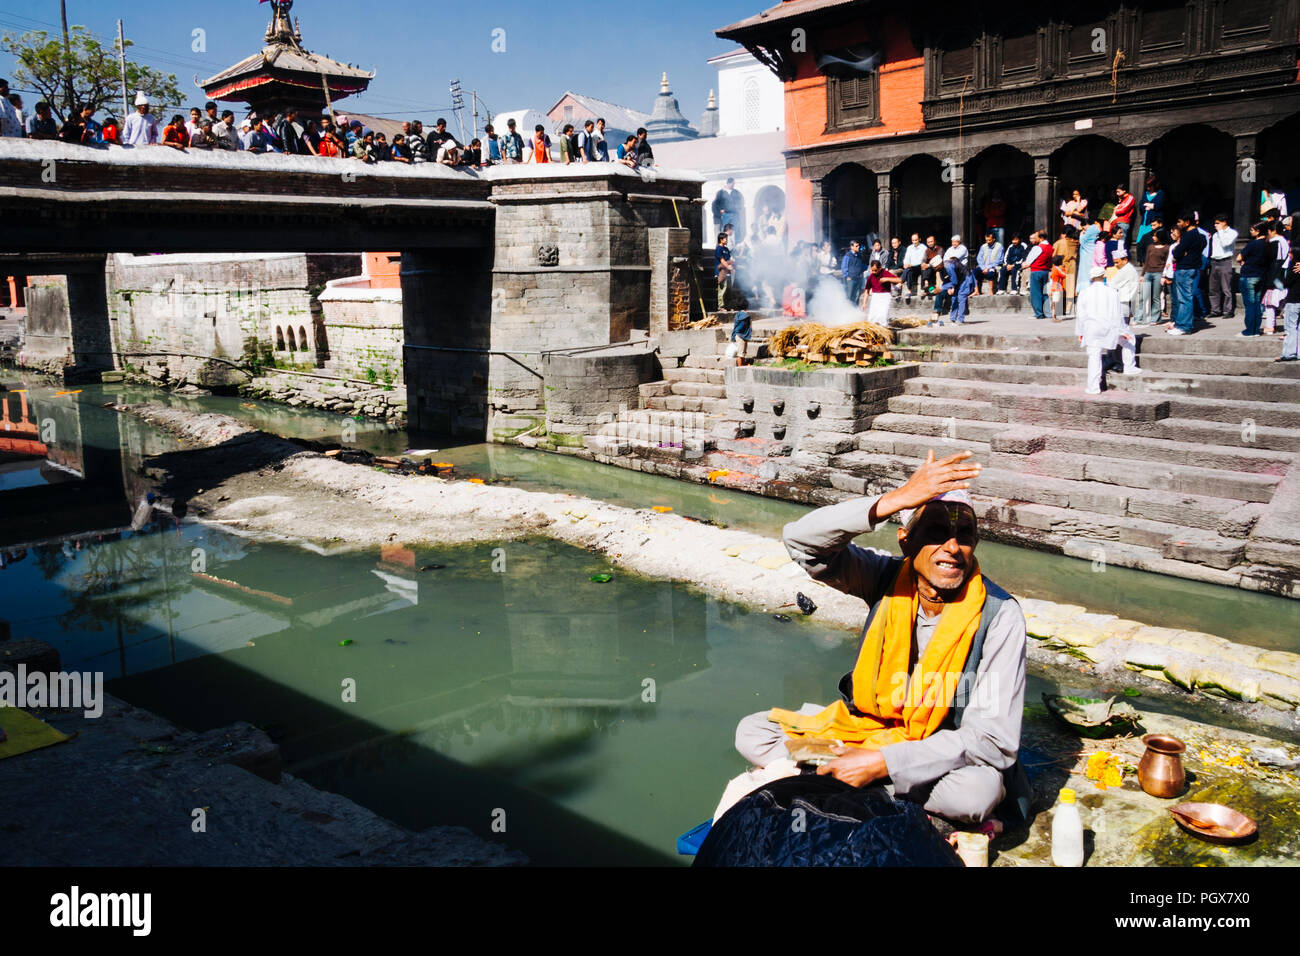 Pashupatinath Temple, Kathmandu Valley, Bagmati, Nepal, South Asia : A brahman sits by the Bagmati river where cremations are taking place at  Pashupa - Stock Image